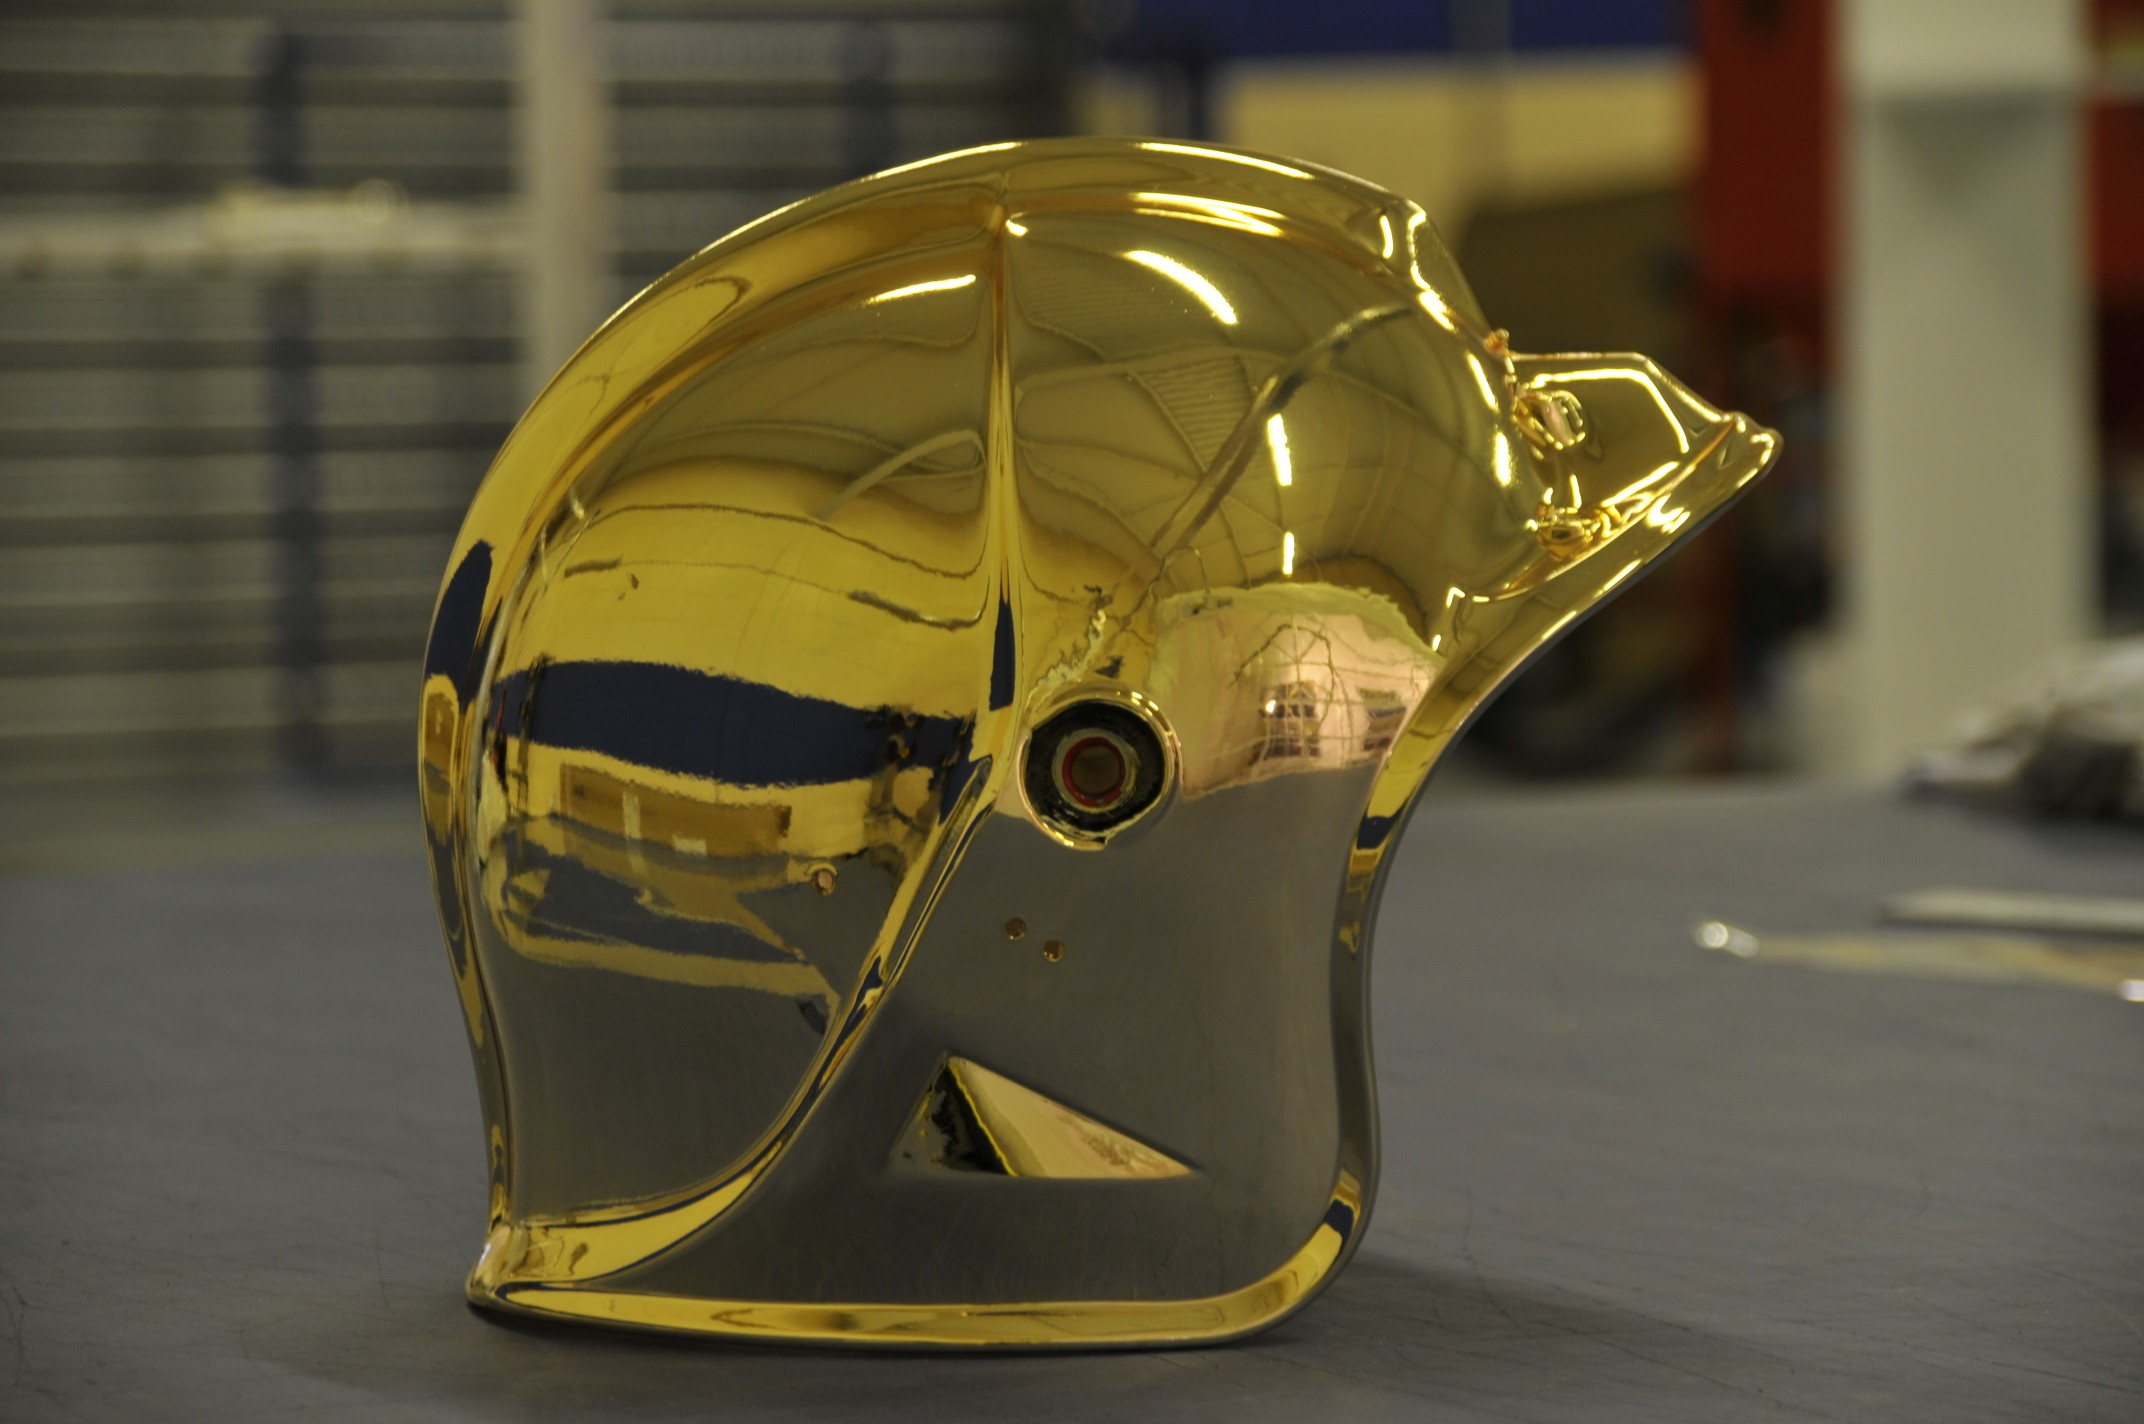 24k gold plating on a helmet